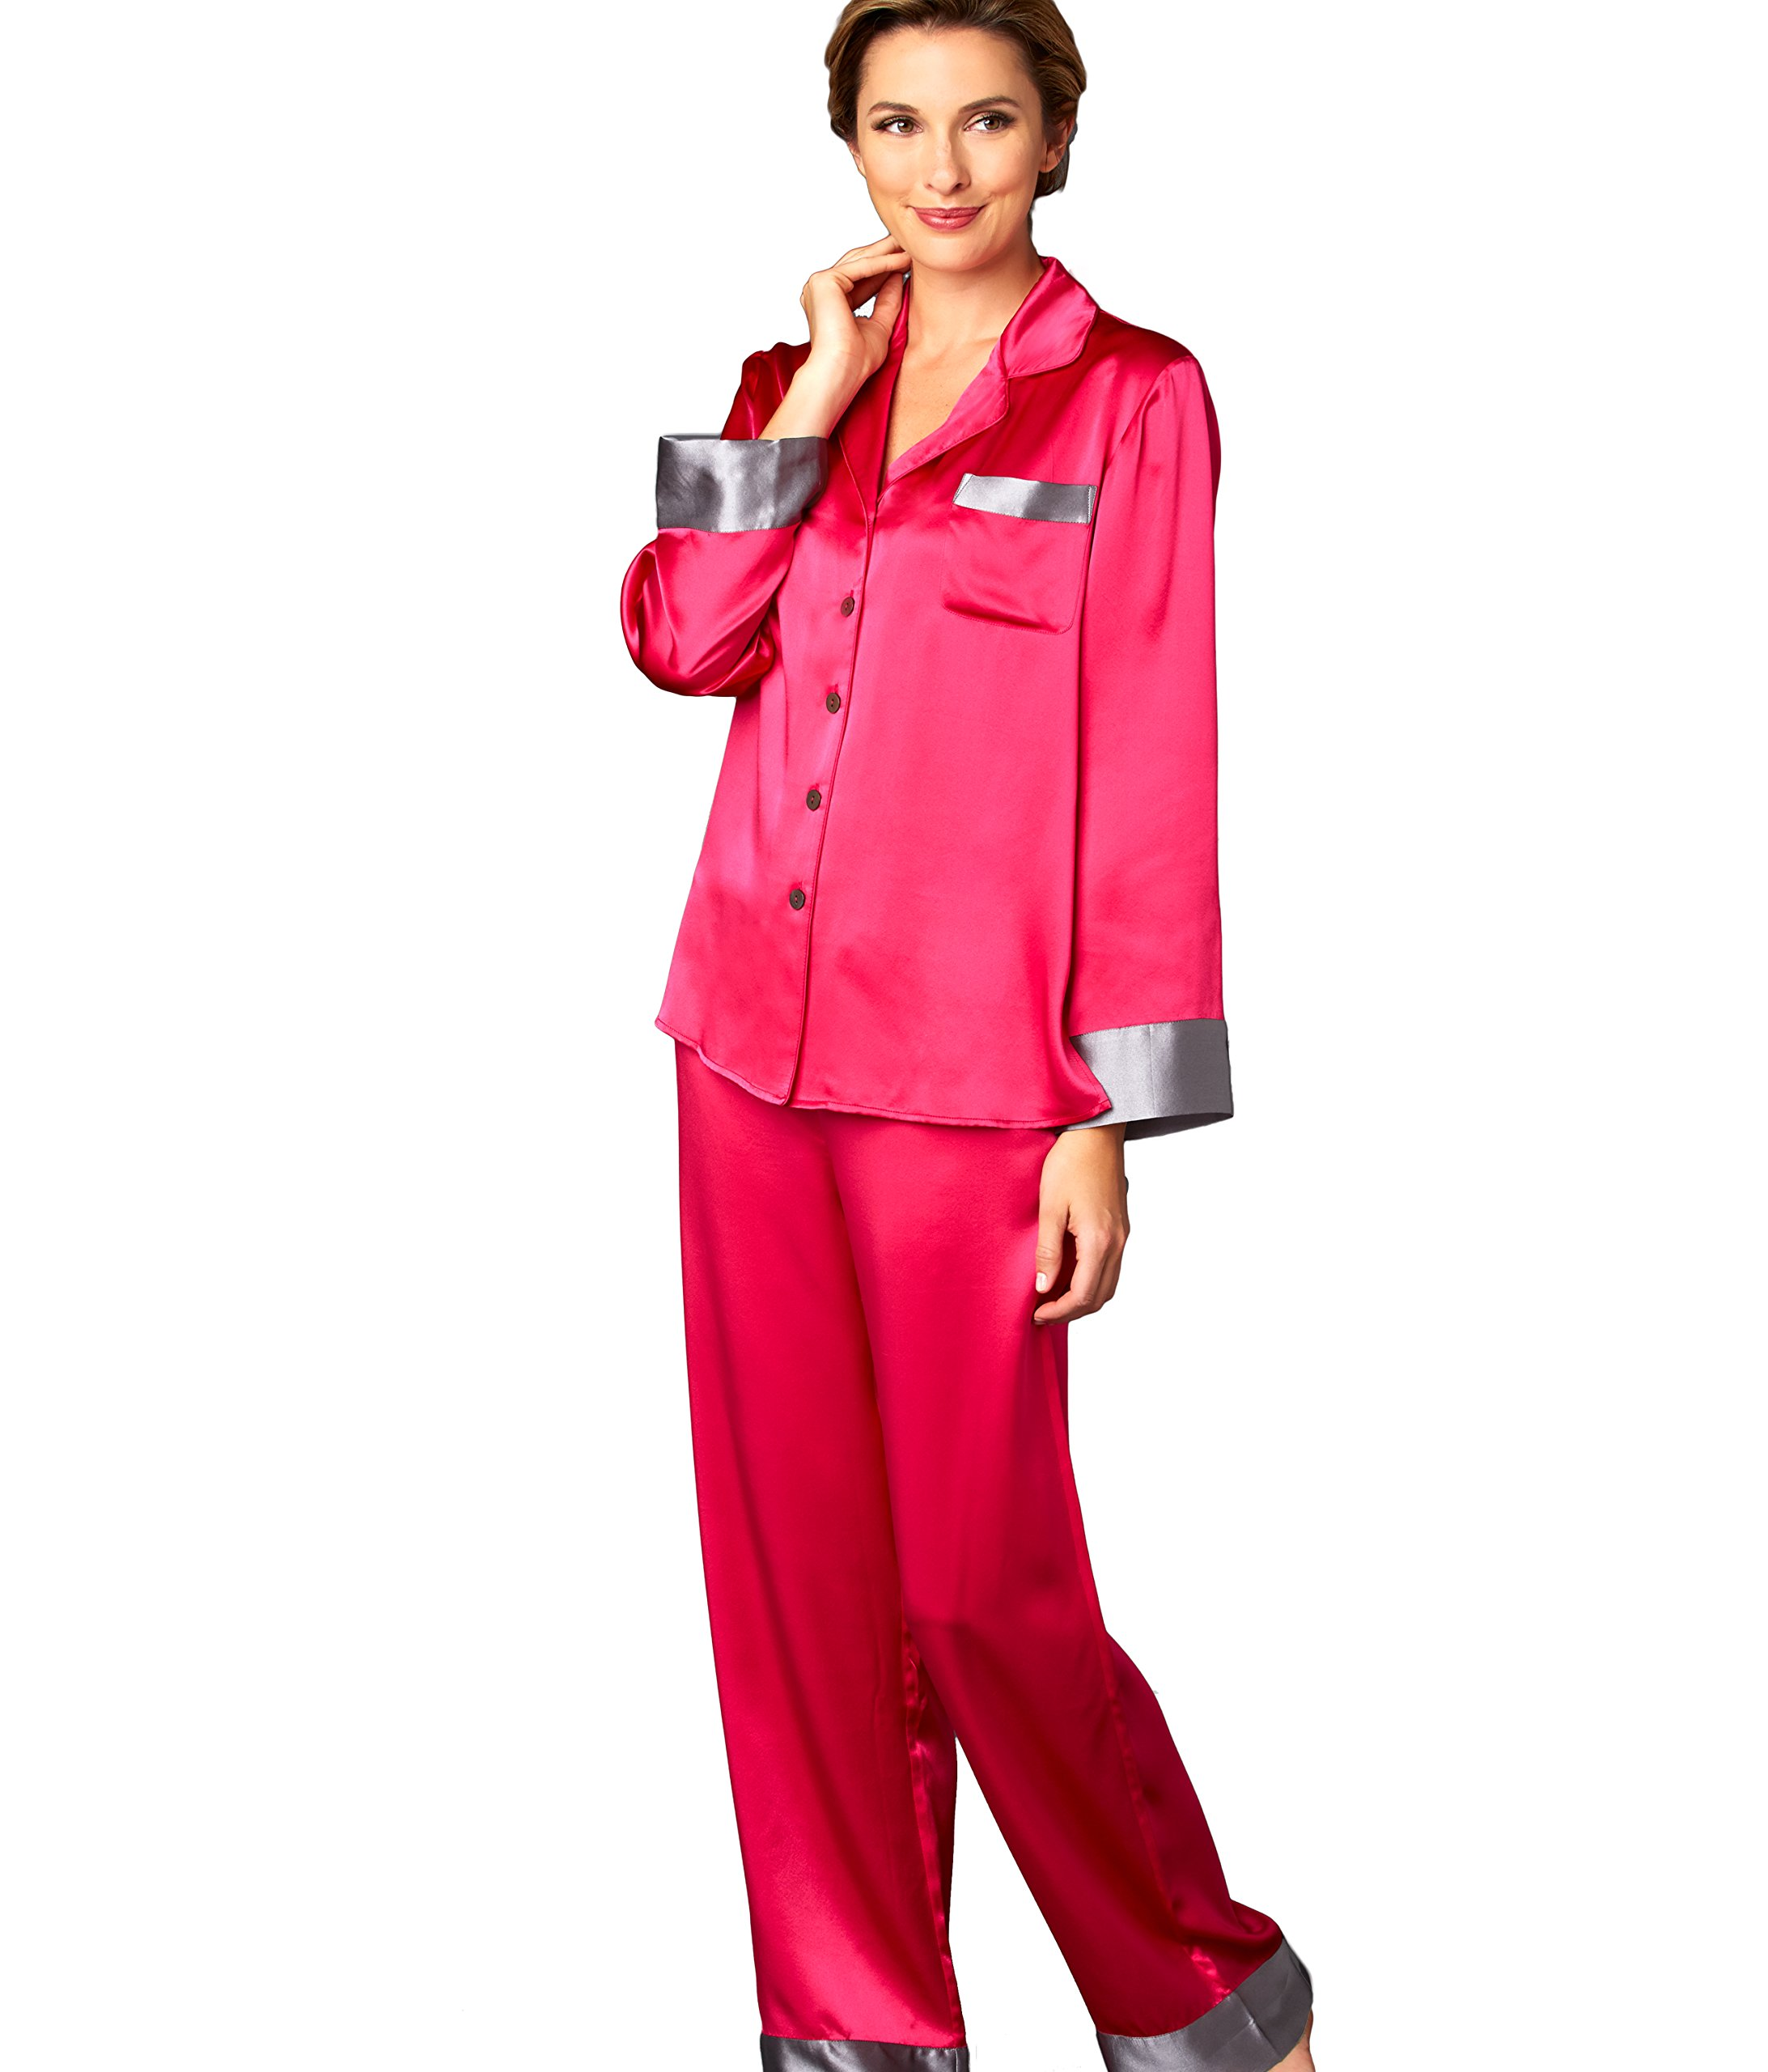 Julianna Rae Women's 100% Silk Pajamas, Classic Fit, Evening Lounge Collection, Amore, S